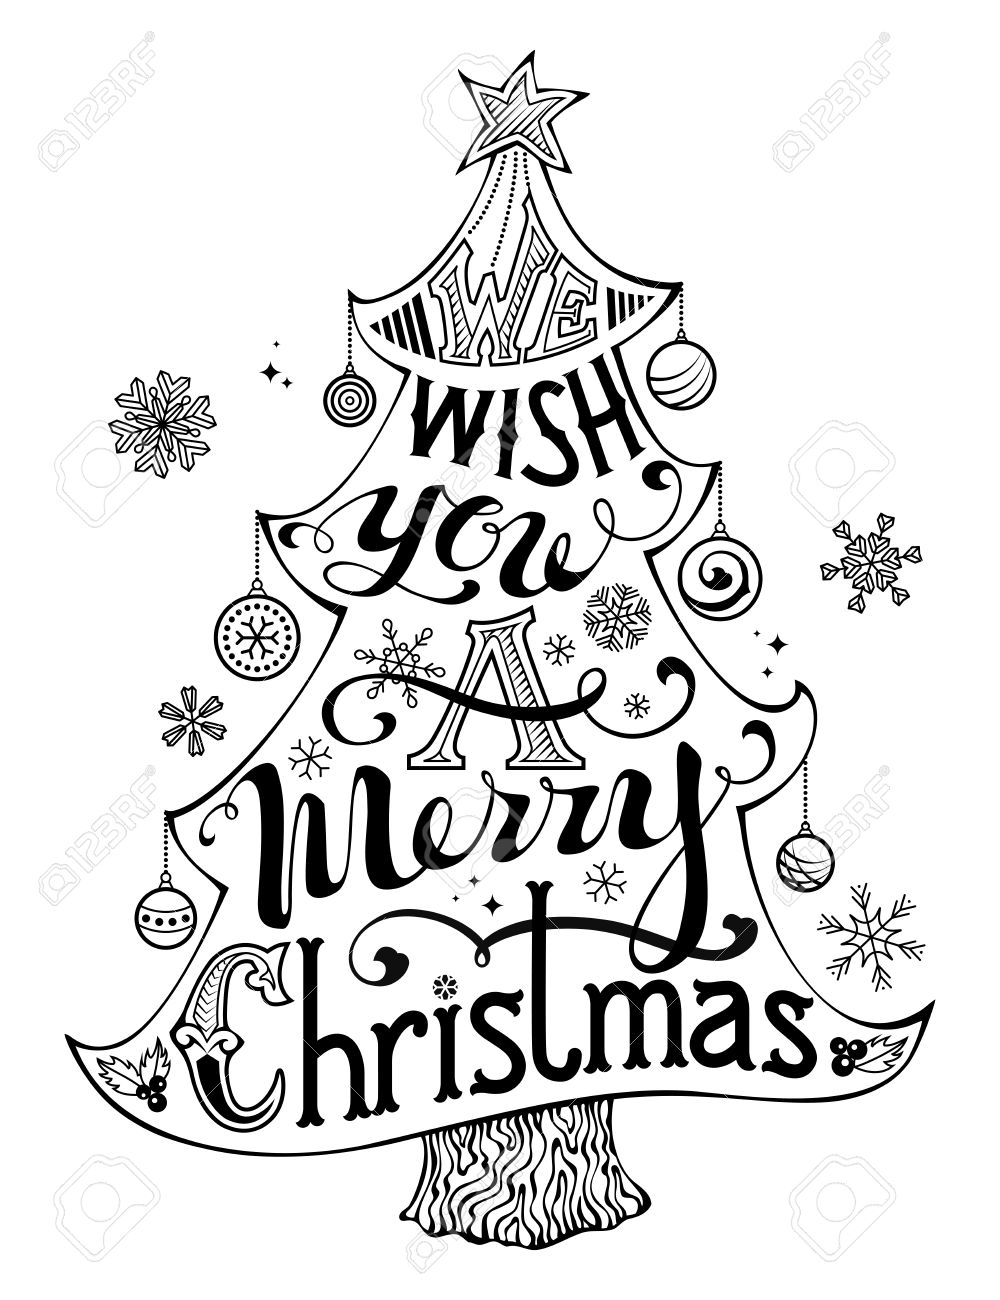 Merry Christmas Images Clip Art.50 Free Merry Christmas Clip Art To Decorate Christmas Tree